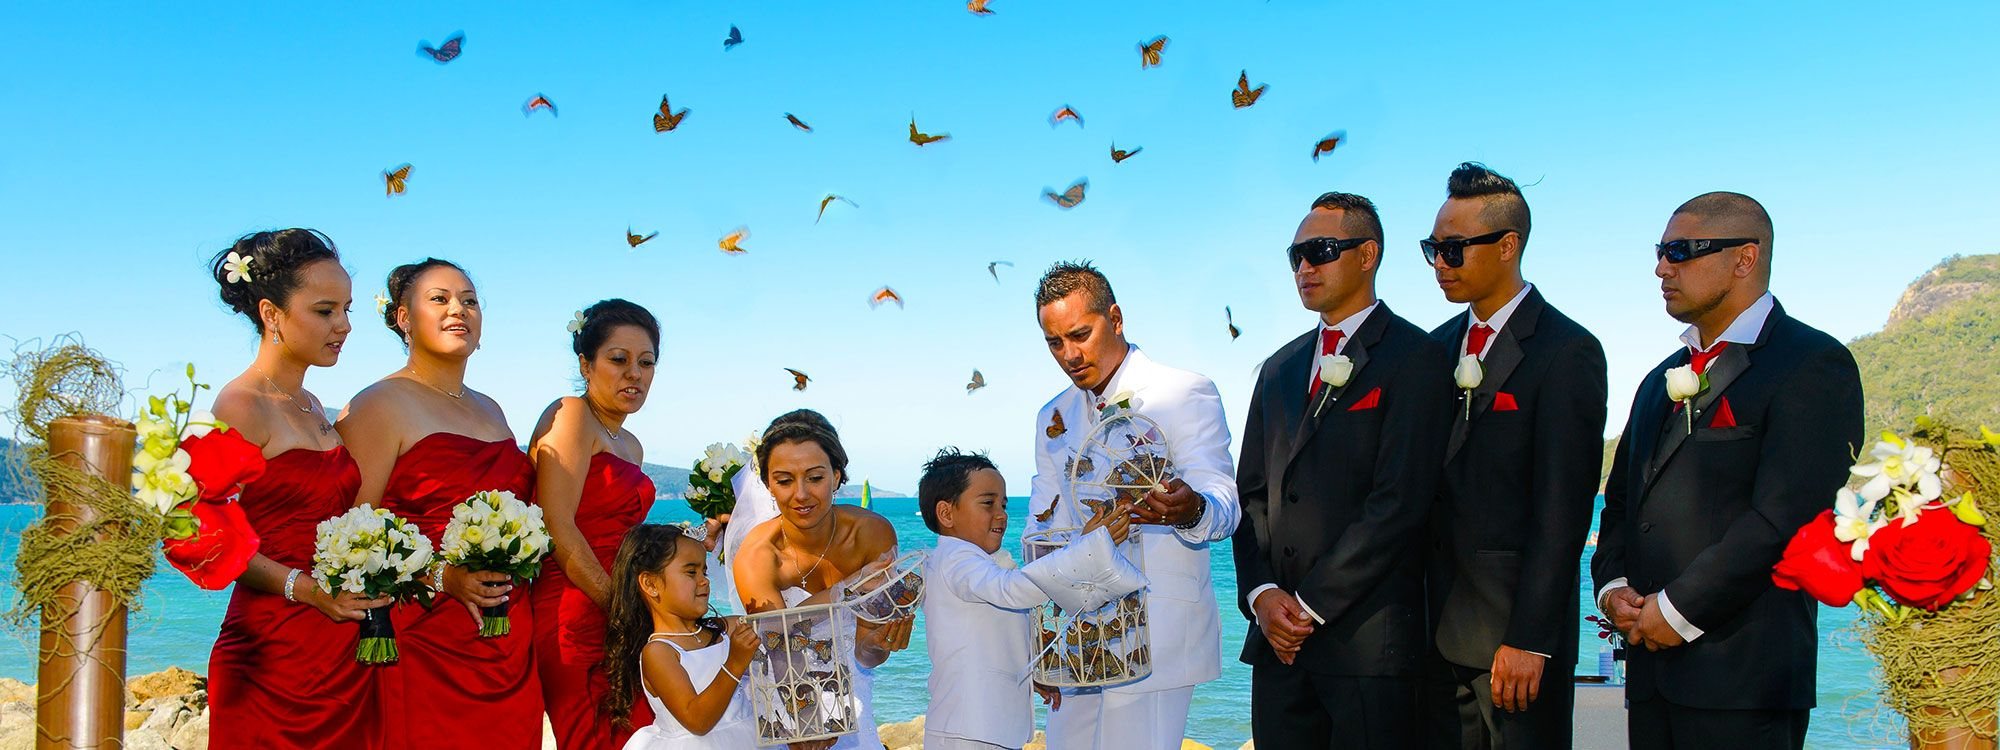 children help release butterflies at conclusion of wedding